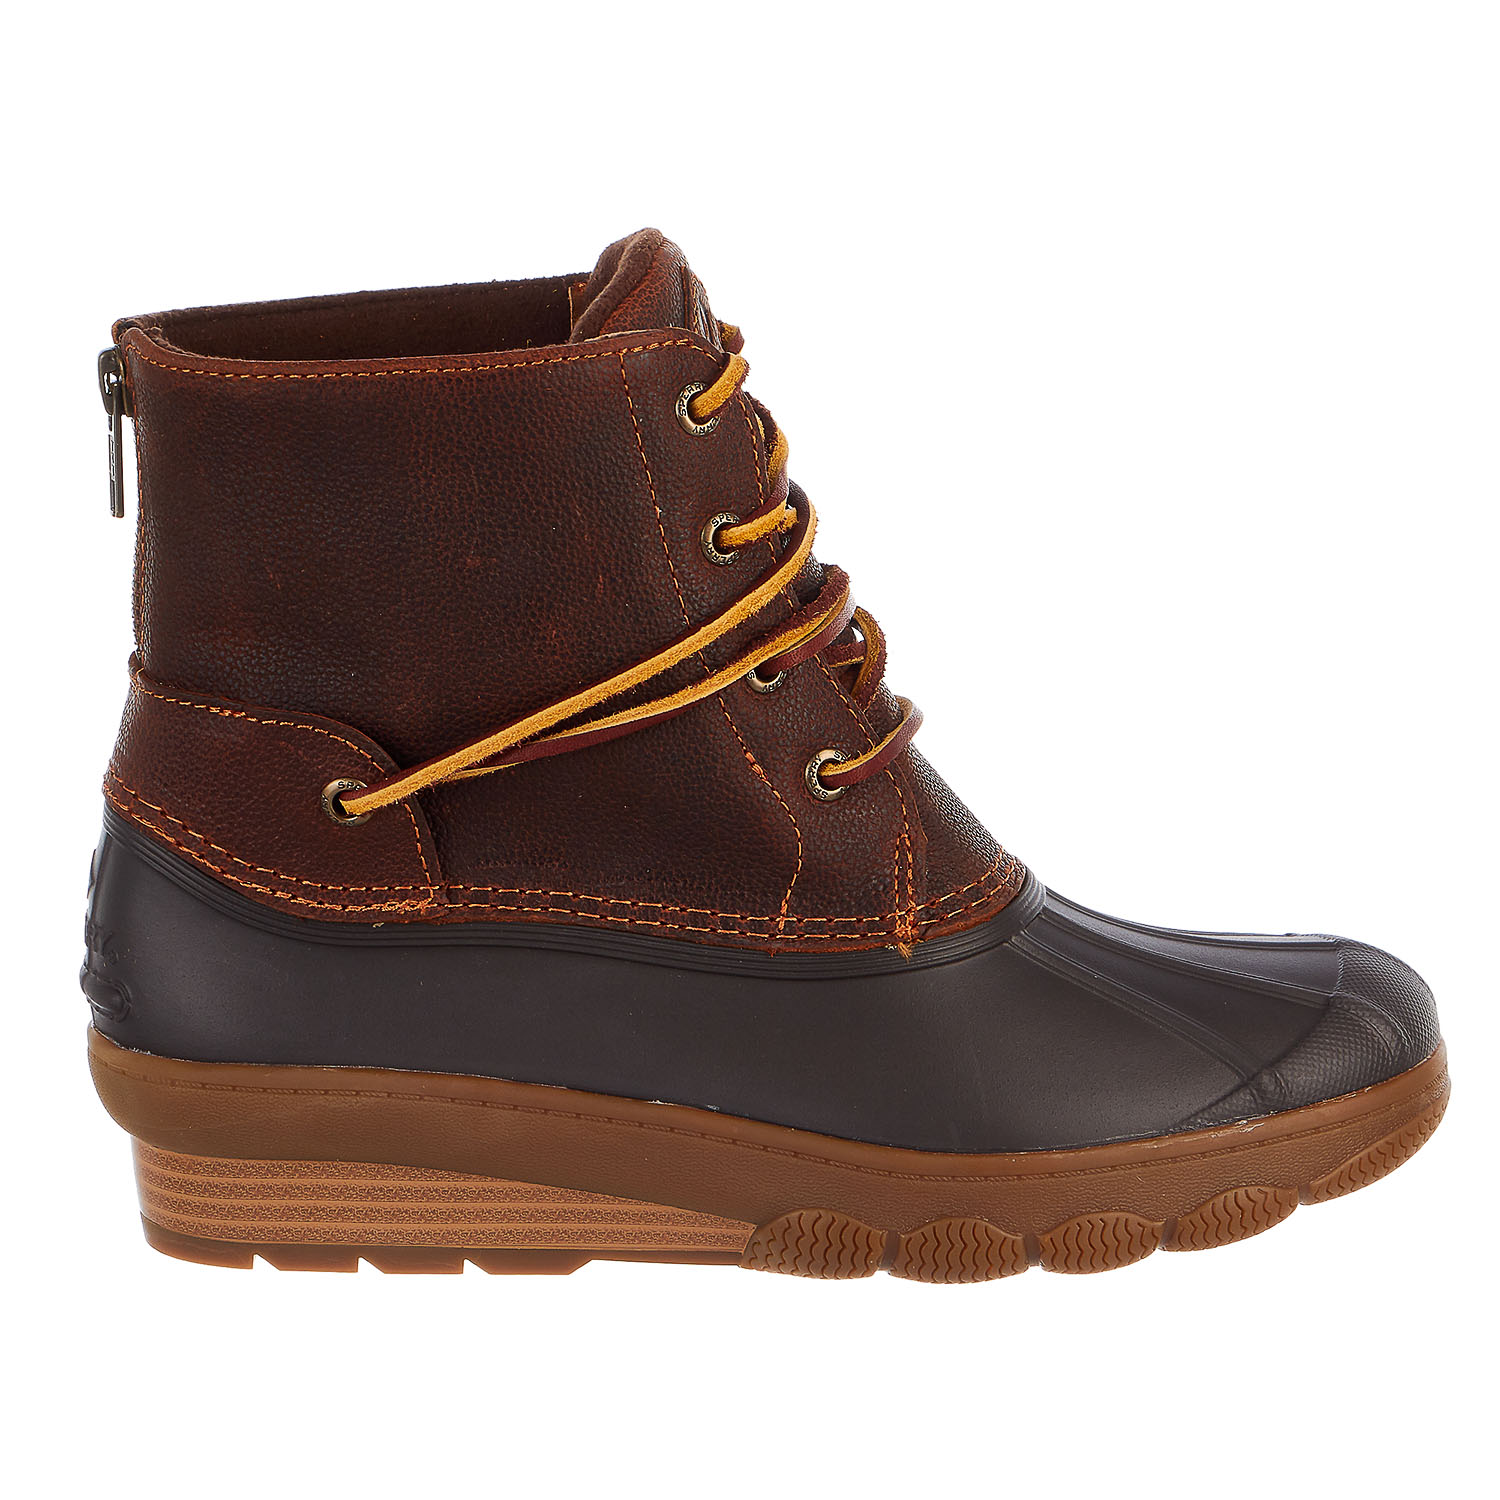 Sperry Top-Sider Saltwater Duck Boot - Womens